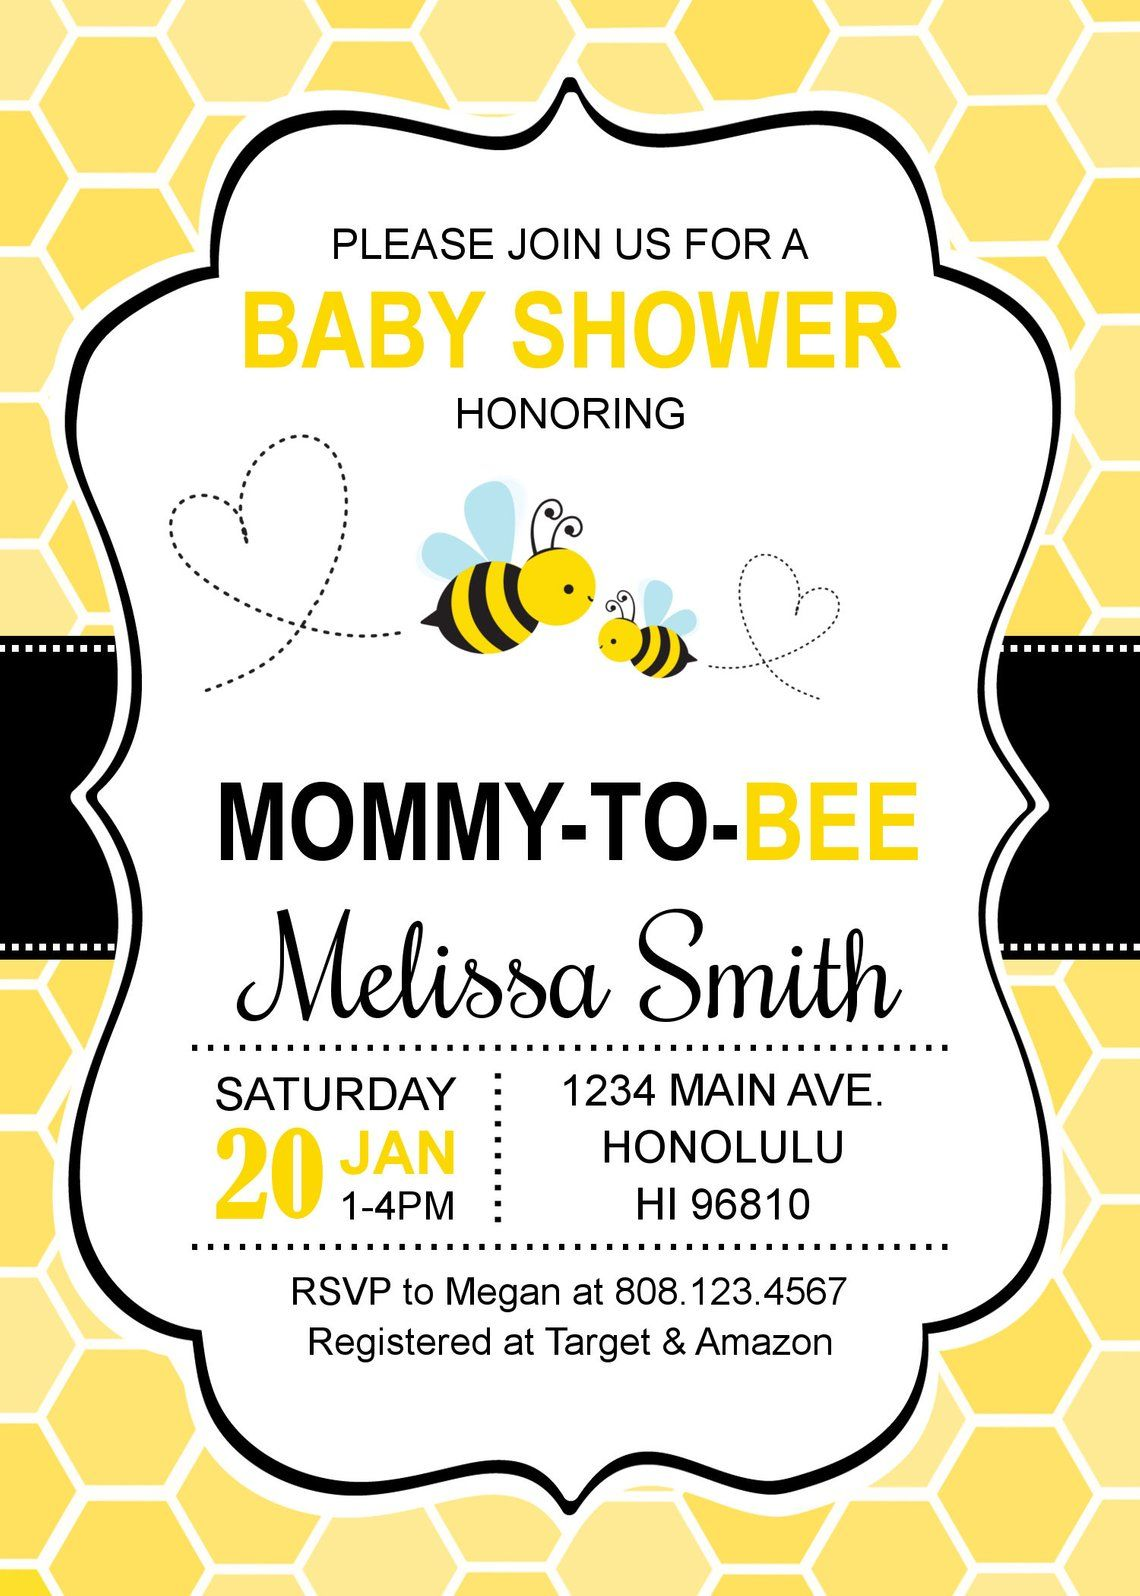 Bumble Bee Baby Shower Invitations Honey Bee Baby Shower Etsy Bee Baby Shower Invitations Honey Bee Baby Shower Invitations Honey Bee Baby Shower